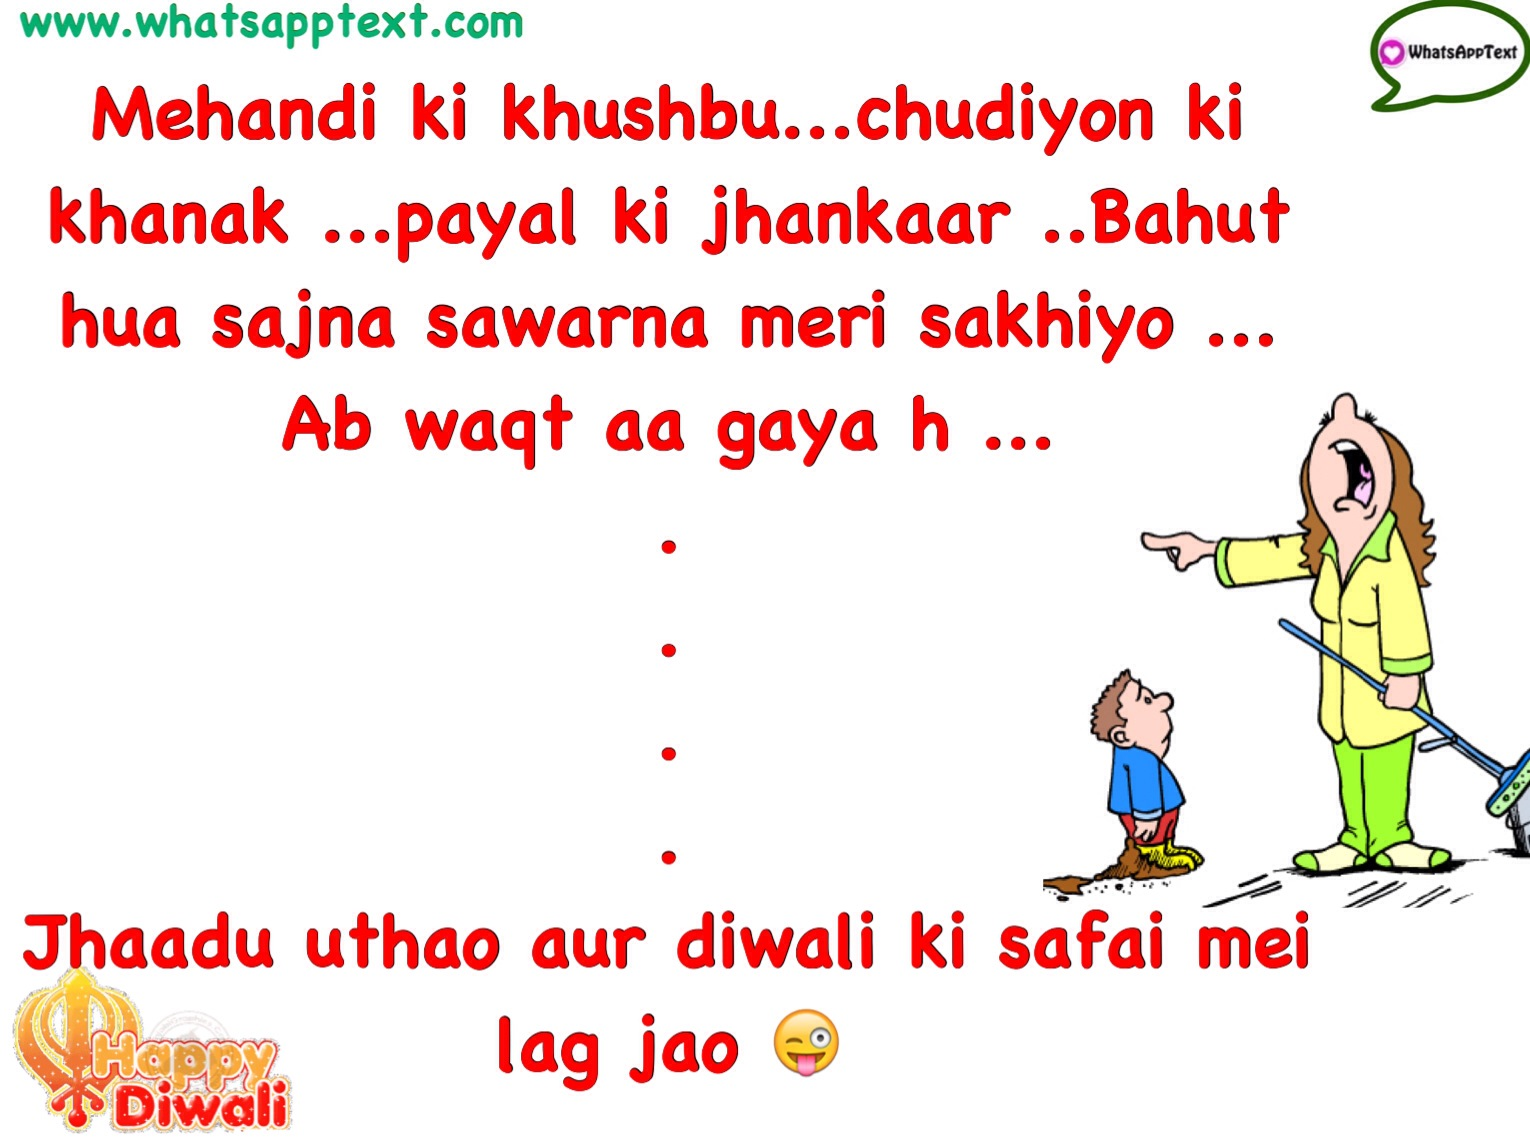 Diwali Ki Safai Jokes Whatsapp Text Jokes Sms Hindi Indian